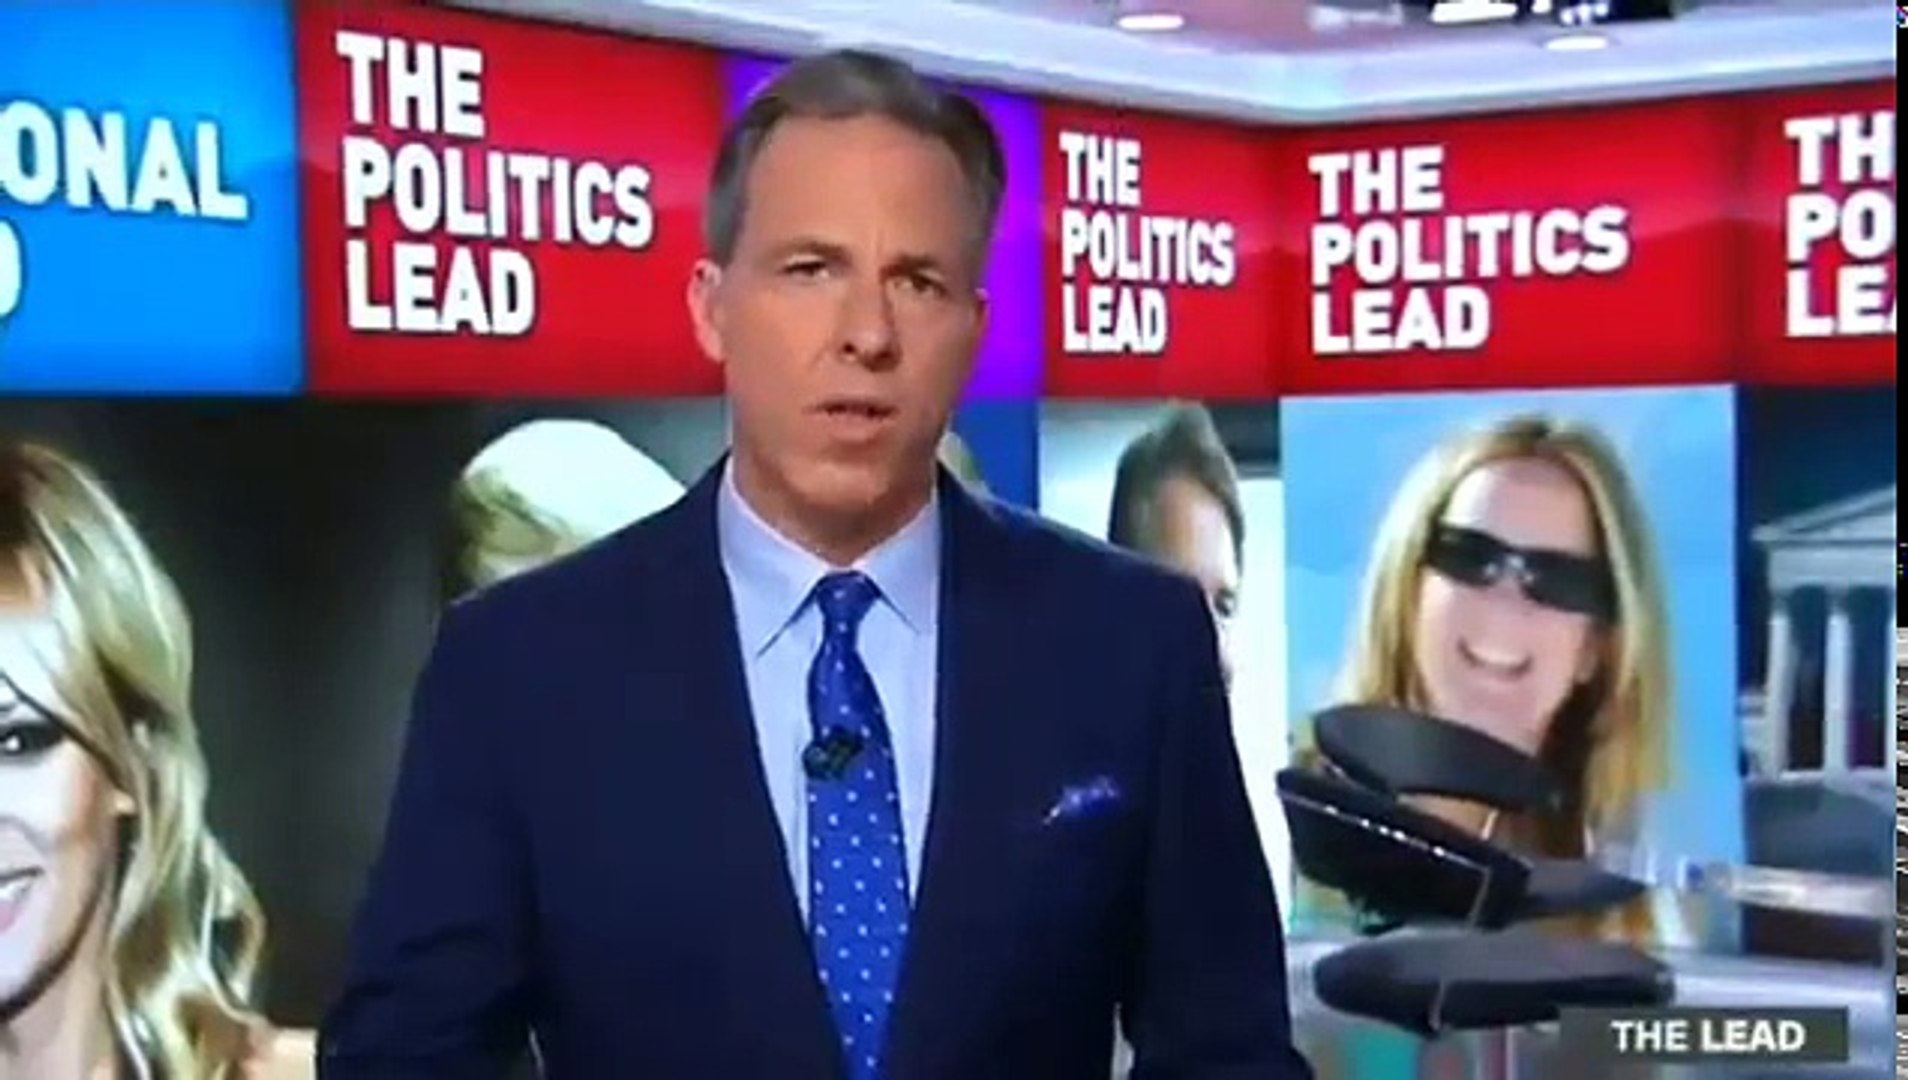 CNN The Lead With Jake Tapper 9/18/18 | CNN Breaking News Trump Today Sep 18, 2018